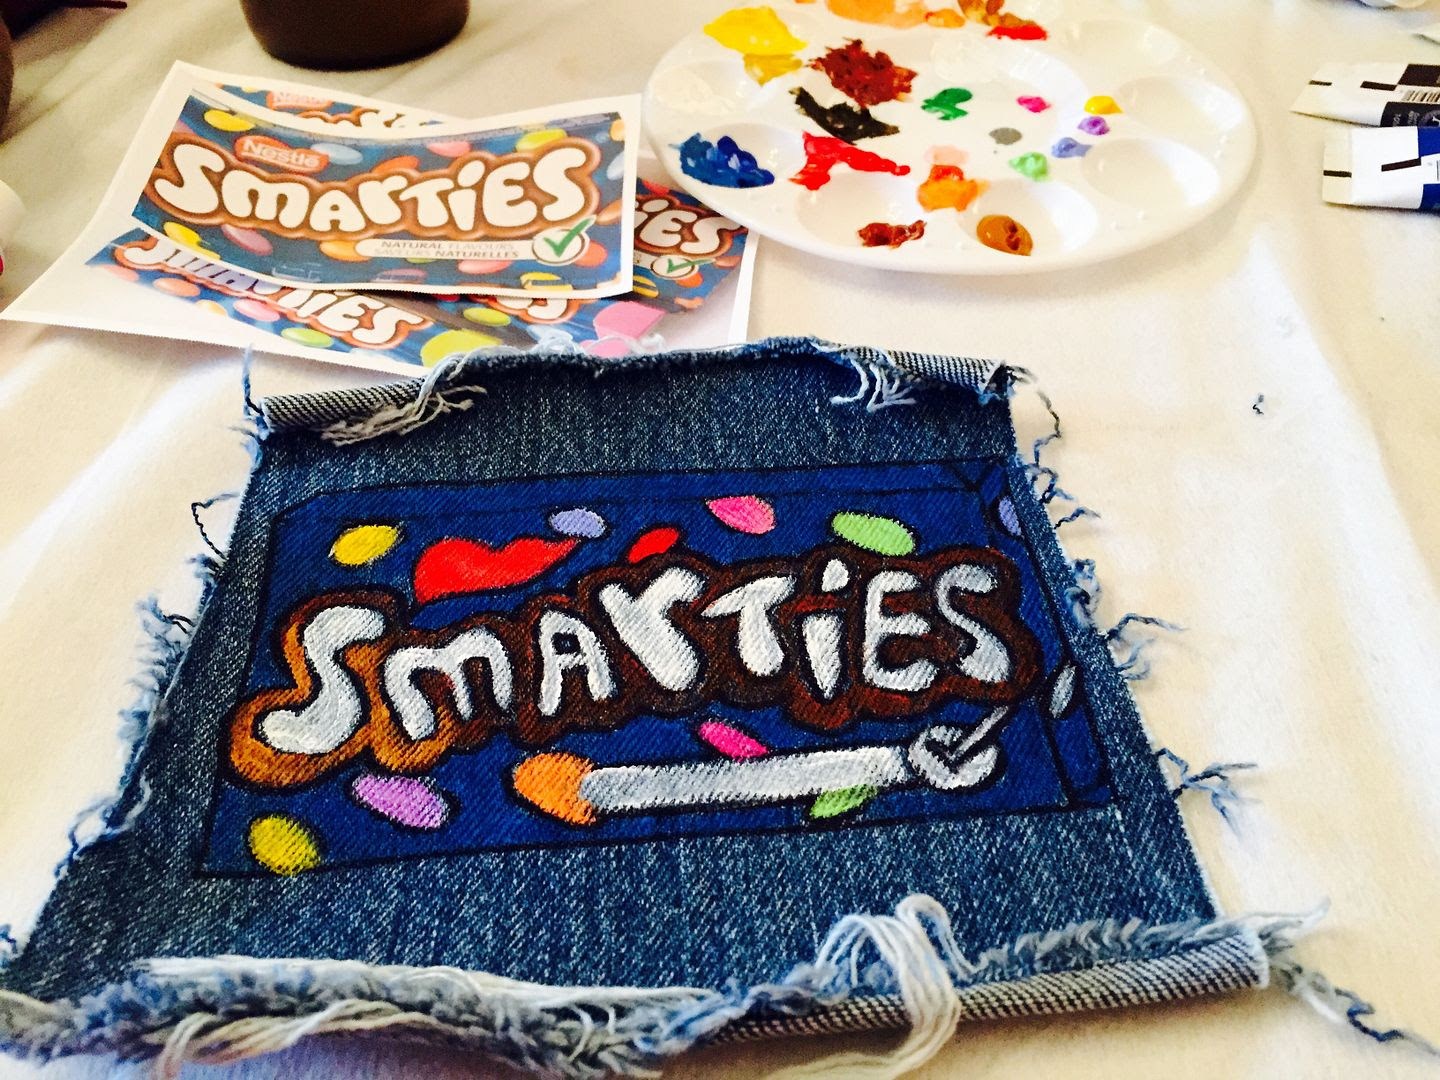 photo smarties 4x6-beckermanblog-chocolate bar jeans- beckermandiy-commonthread-chocolate day_zpsqxdclavz.jpg